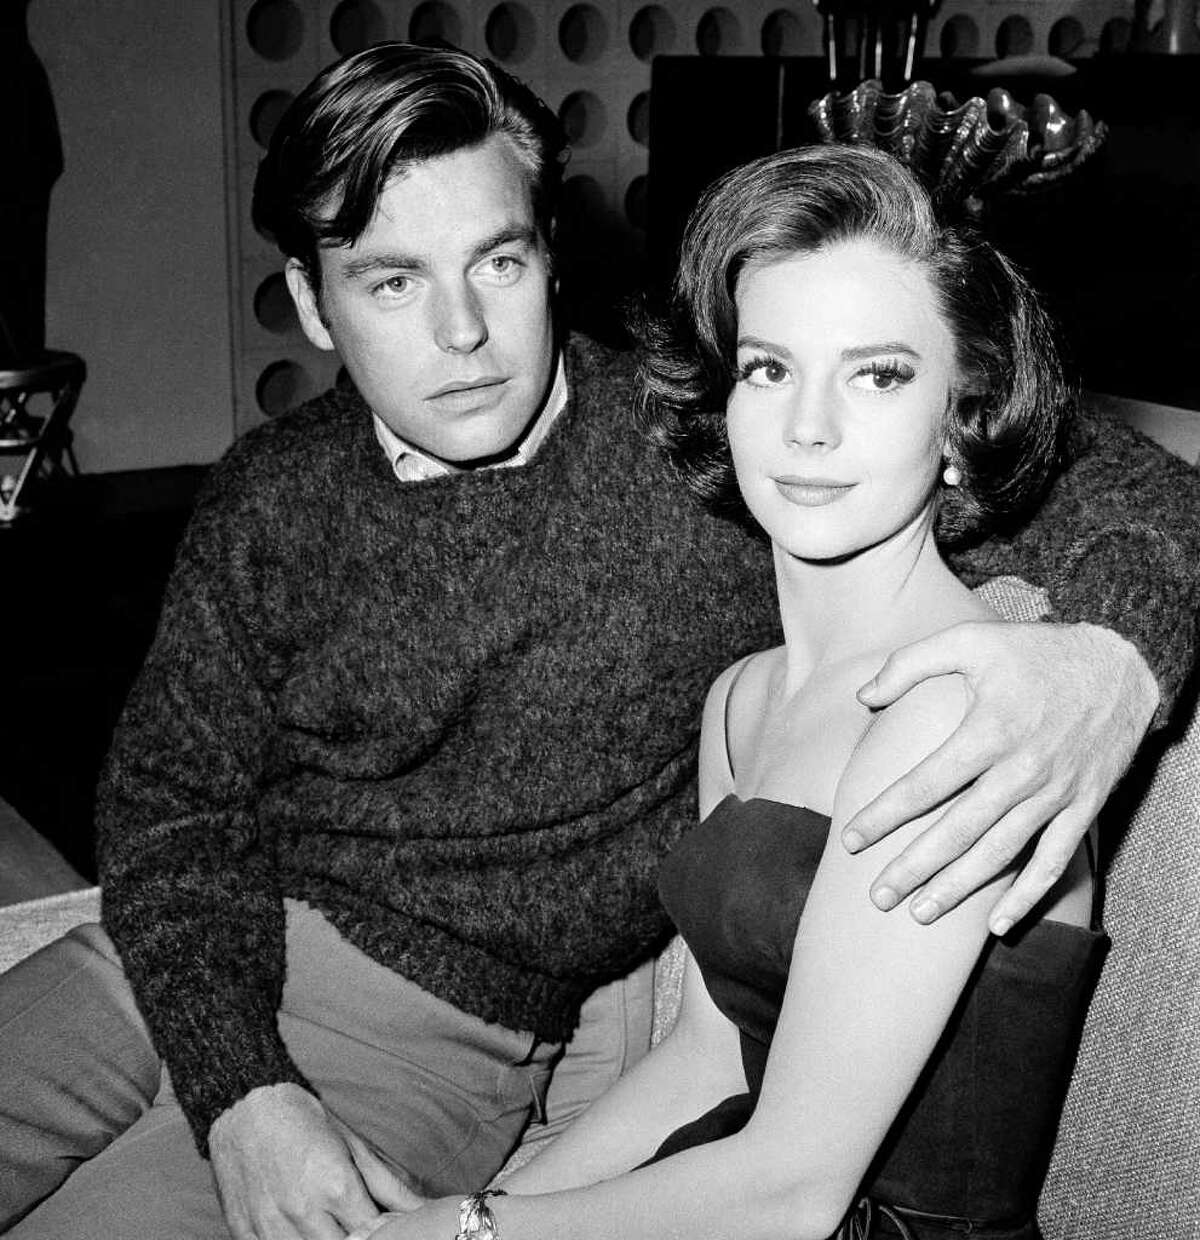 Natalie Wood and her husband Robert Wagner in Los Angeles on Nov. 25, 1959. Dennis Davern, captain of the yacht Splendour, which Wood was aboard at the time of her death, said on national TV Friday, Nov. 18, 2011 that he lied to investigators about Natalie Wood's mysterious death 30 years ago and blames the actress' husband at the time, Wagner, for her drowning in the ocean off Southern California.